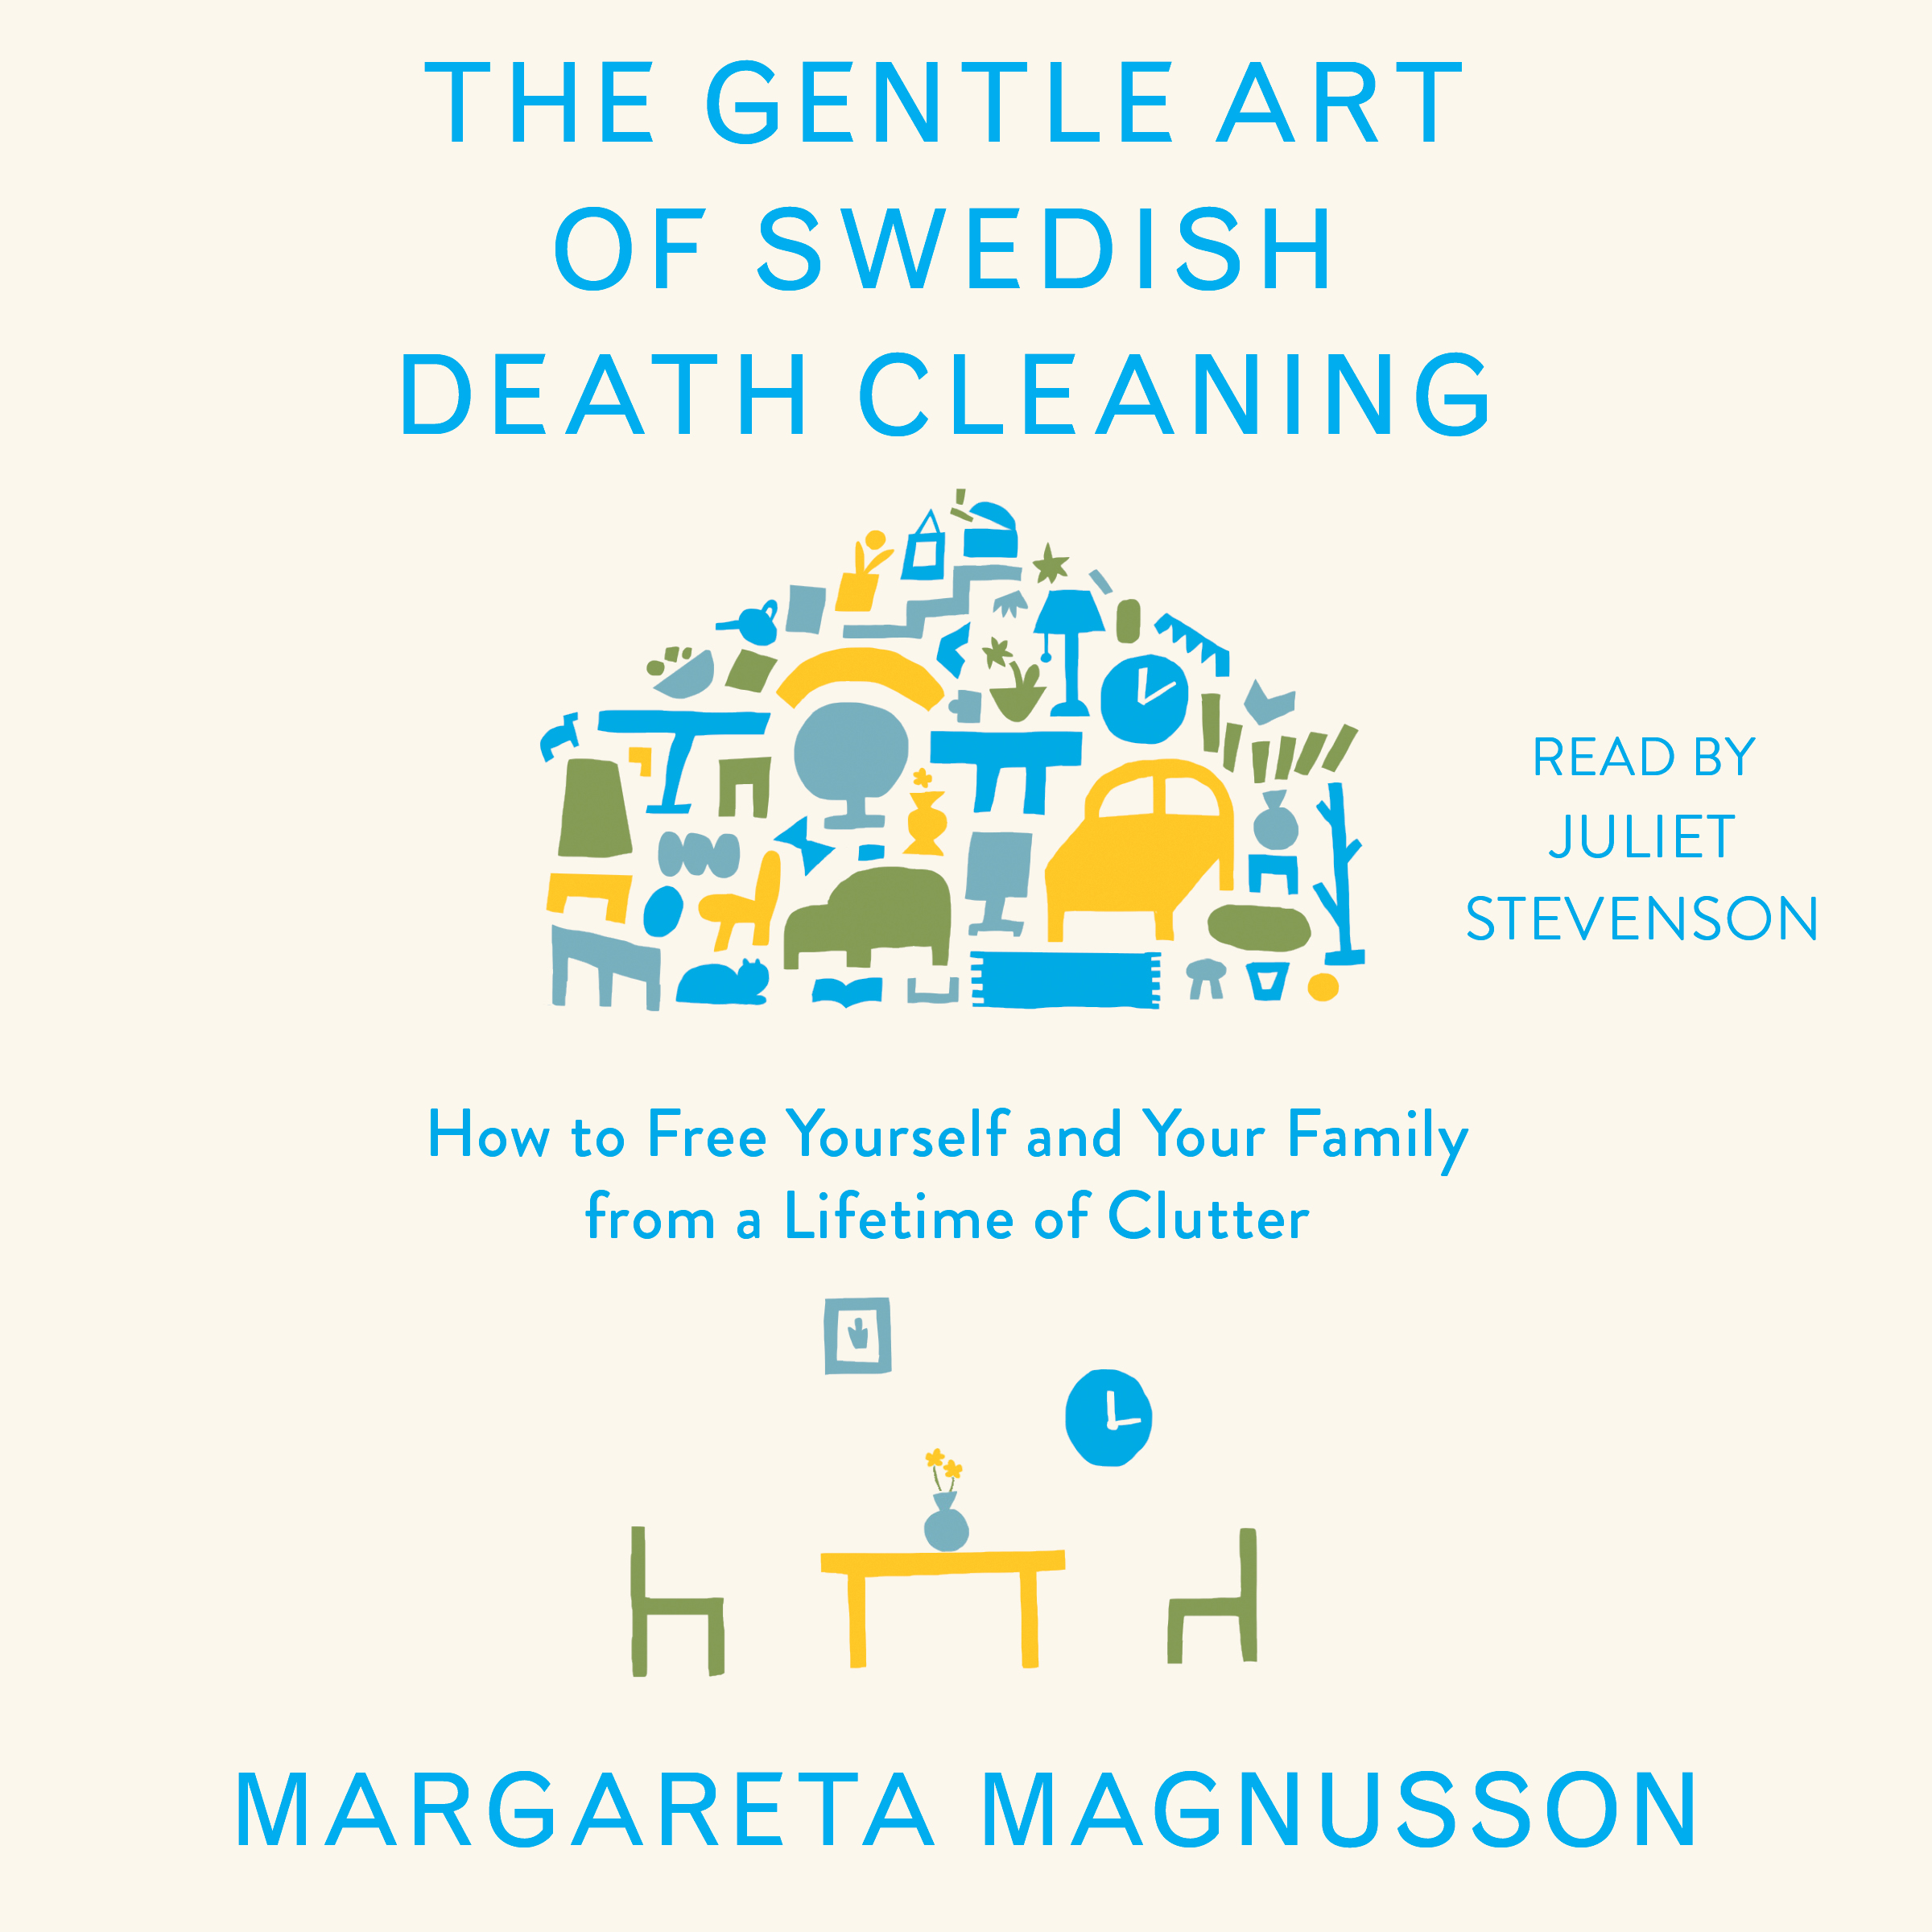 The gentle art of swedish death cleaning 9781508243823 hr